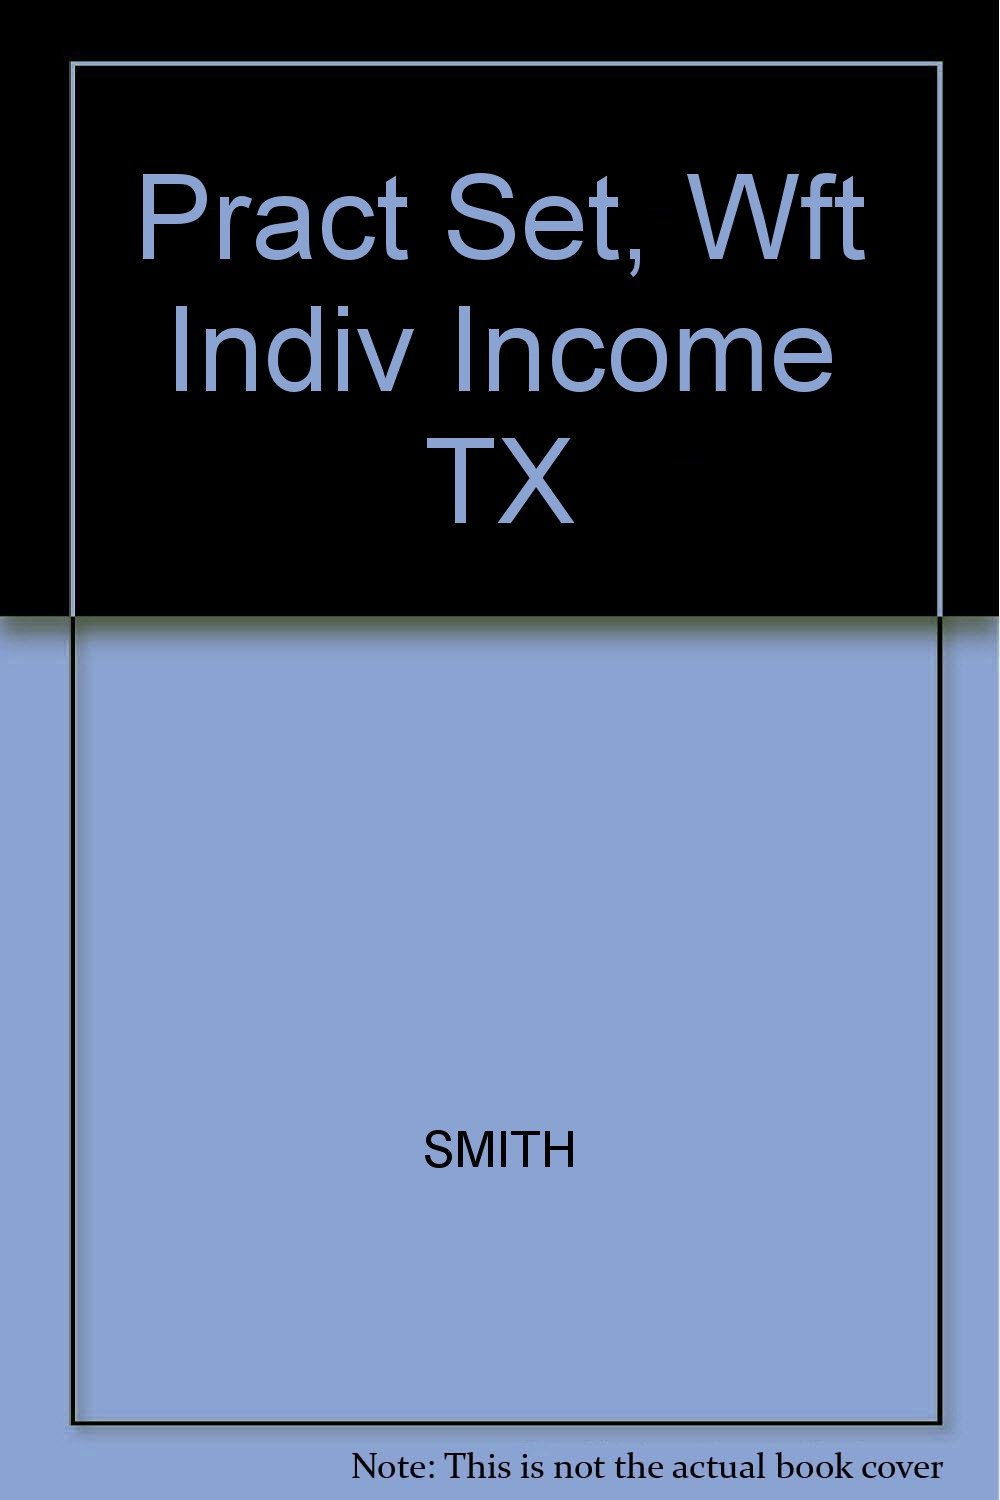 Pract Set, Wft Indiv Income TX: Amazon.es: SMITH, WILLIS, HOFFMAN: Libros en idiomas extranjeros